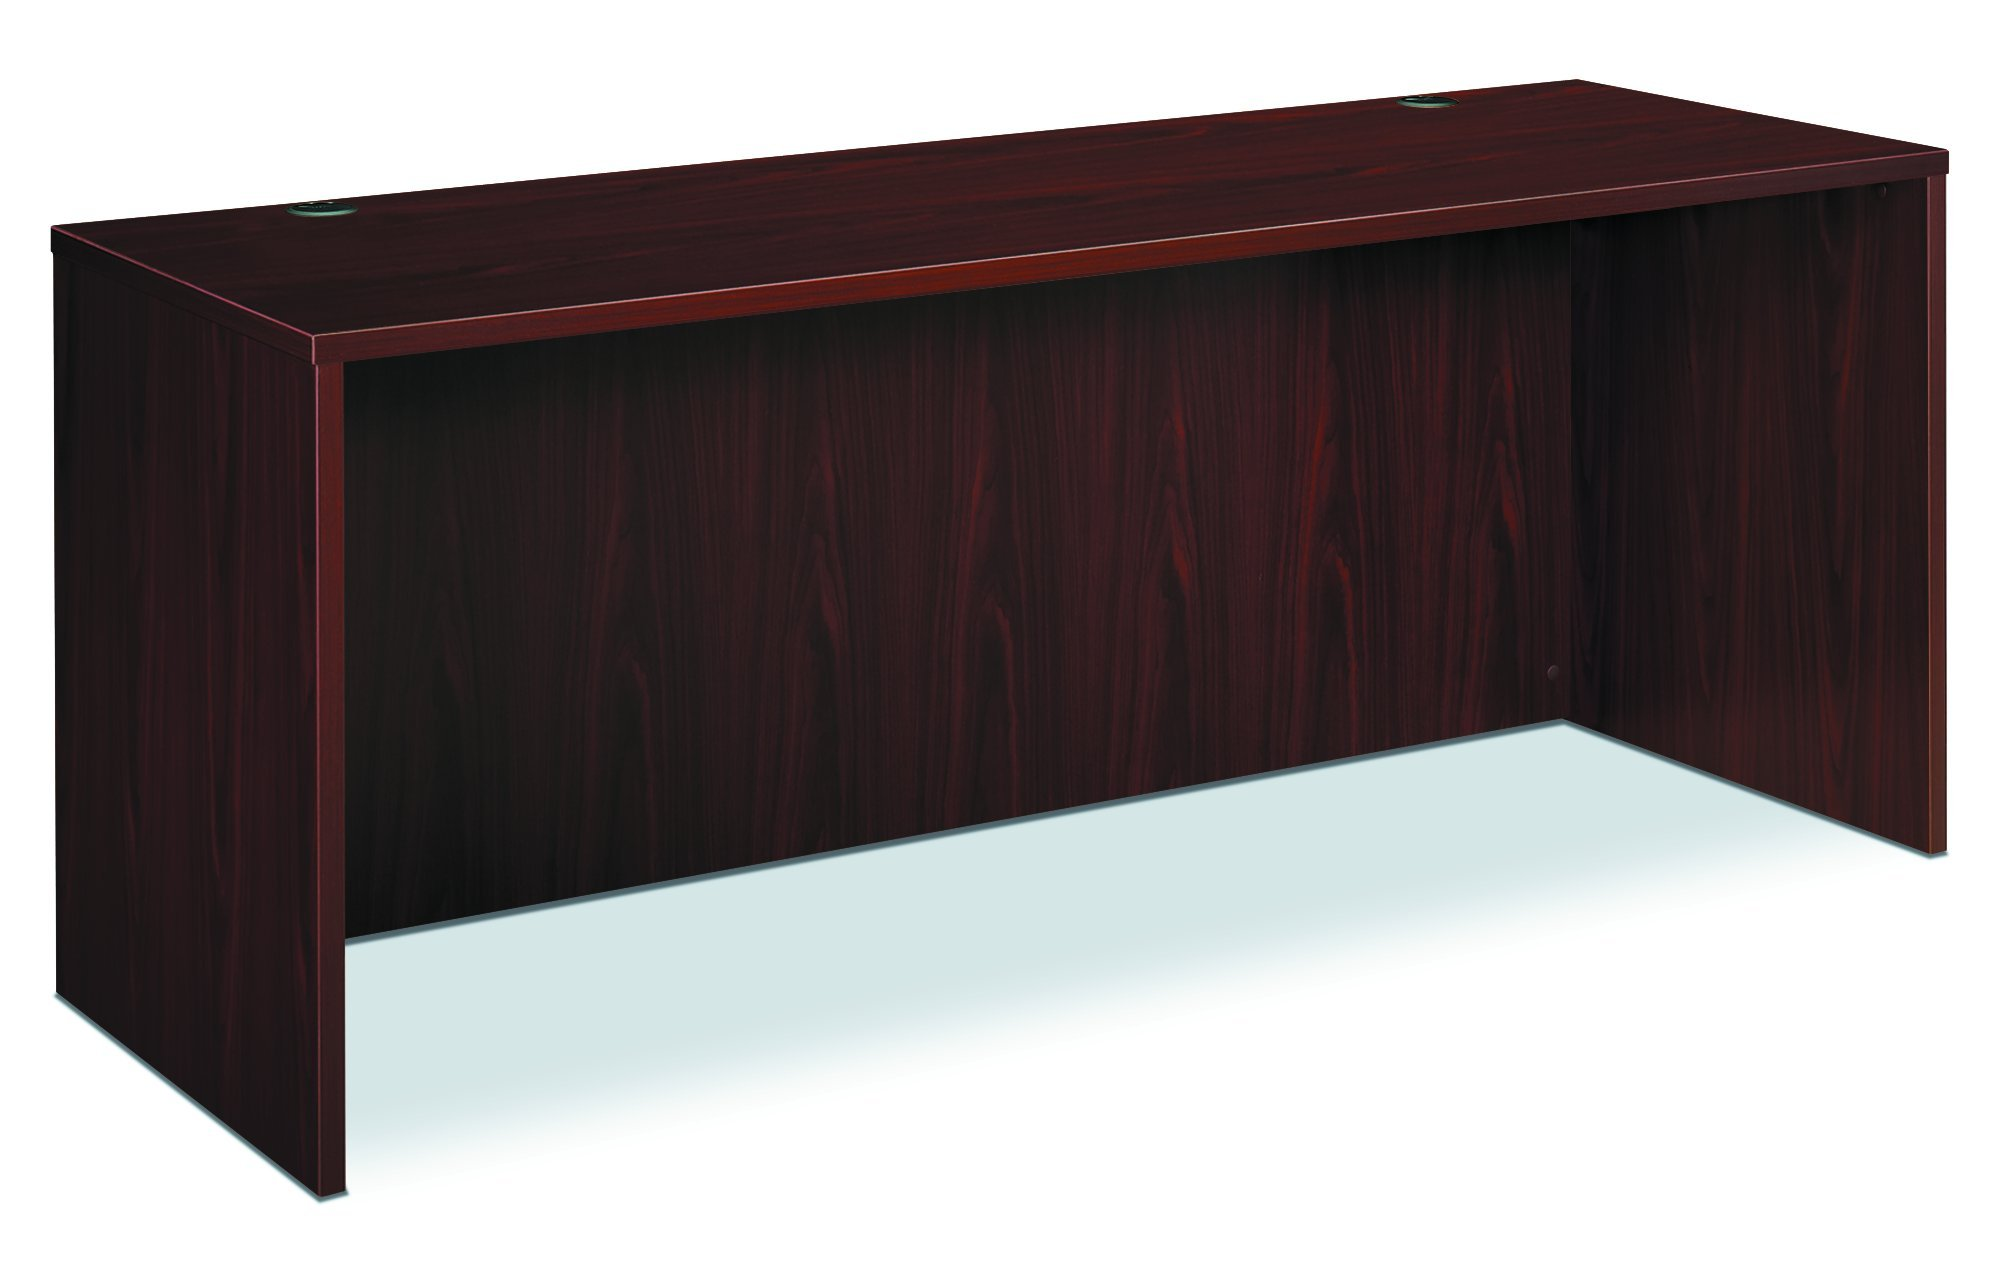 basyx by HON BL Laminate Series Office Desk Shell - Bow Front Top Desk Shell, 72w x 42d x 29h, Mahogany (HBL2111)